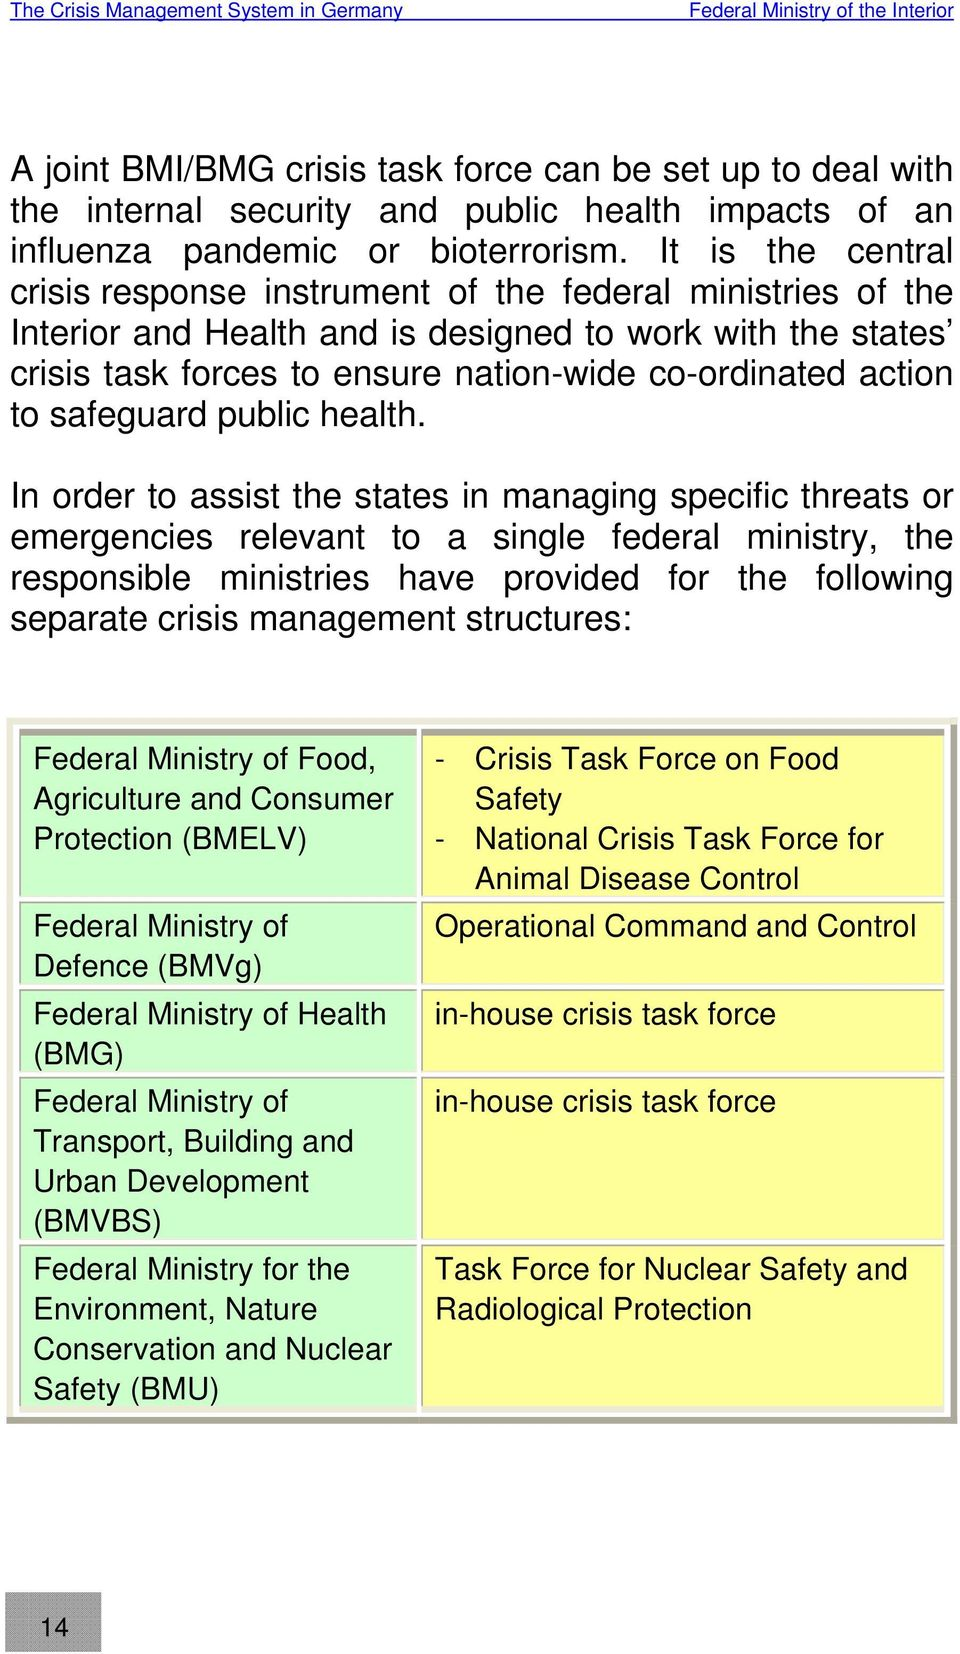 It is the central crisis response instrument of the federal ministries of the Interior and Health and is designed to work with the states crisis task forces to ensure nation-wide co-ordinated action